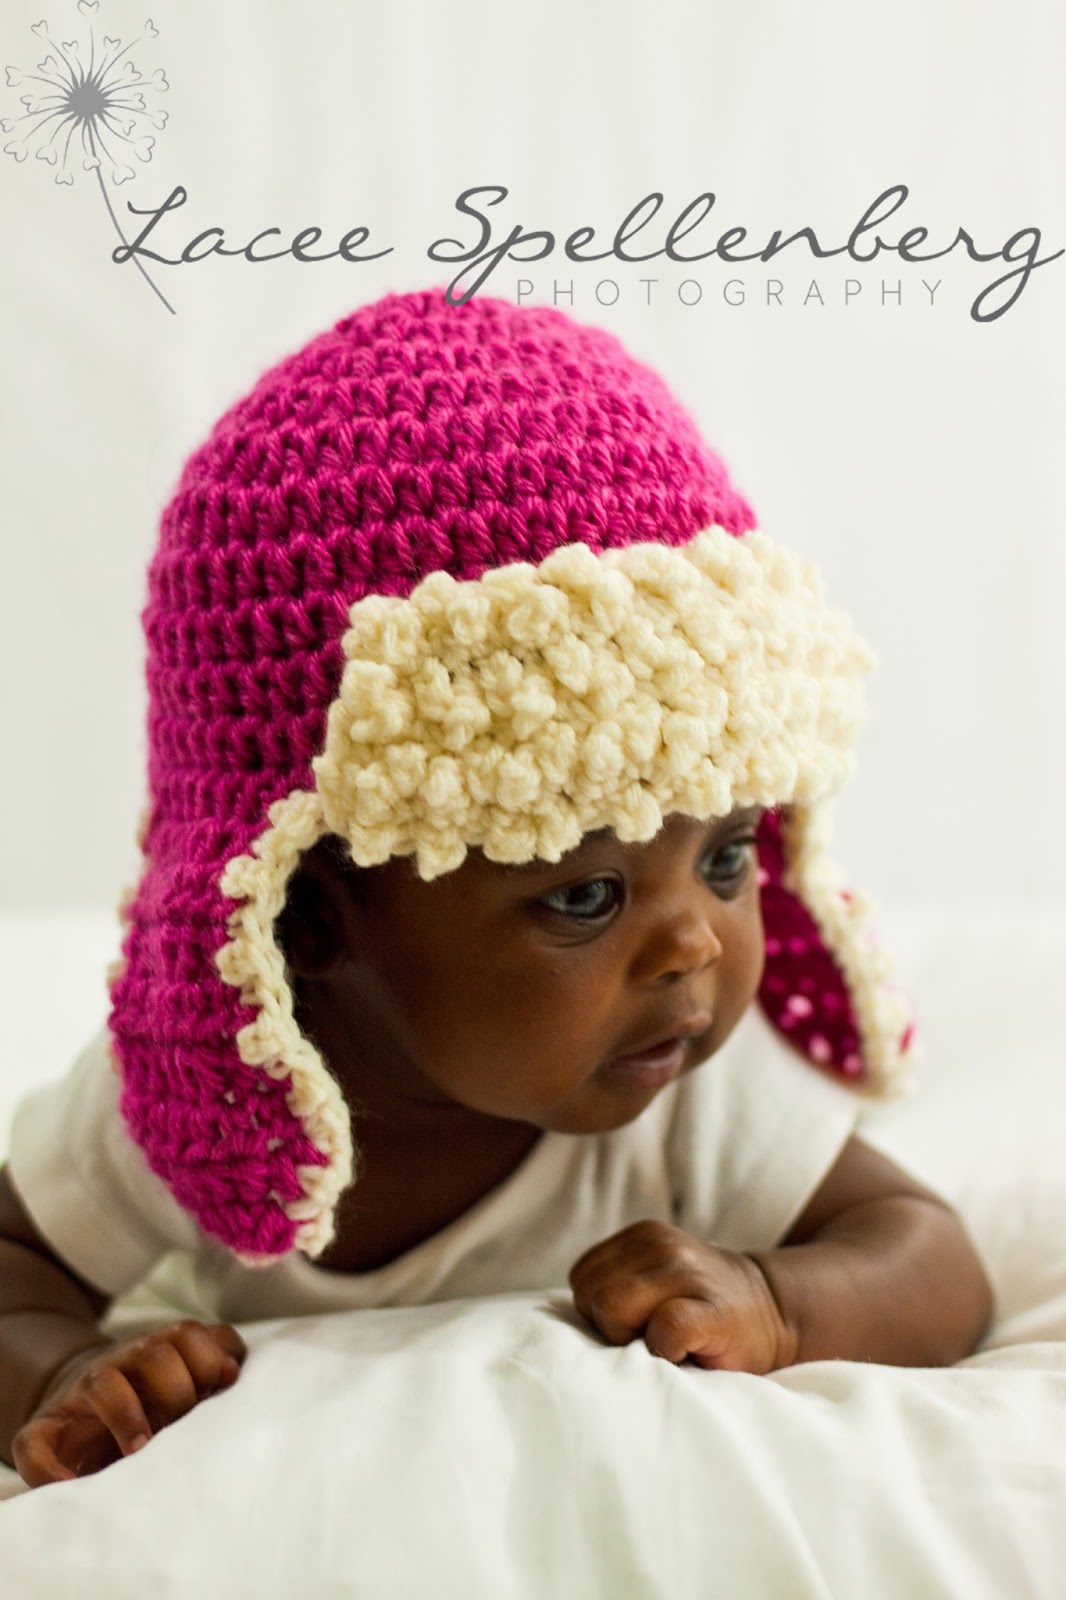 Crochet Patterns Hats For Adults : Crochet Dreamz: Aviator Hat Crochet Pattern, Newborn Baby to Adult Man